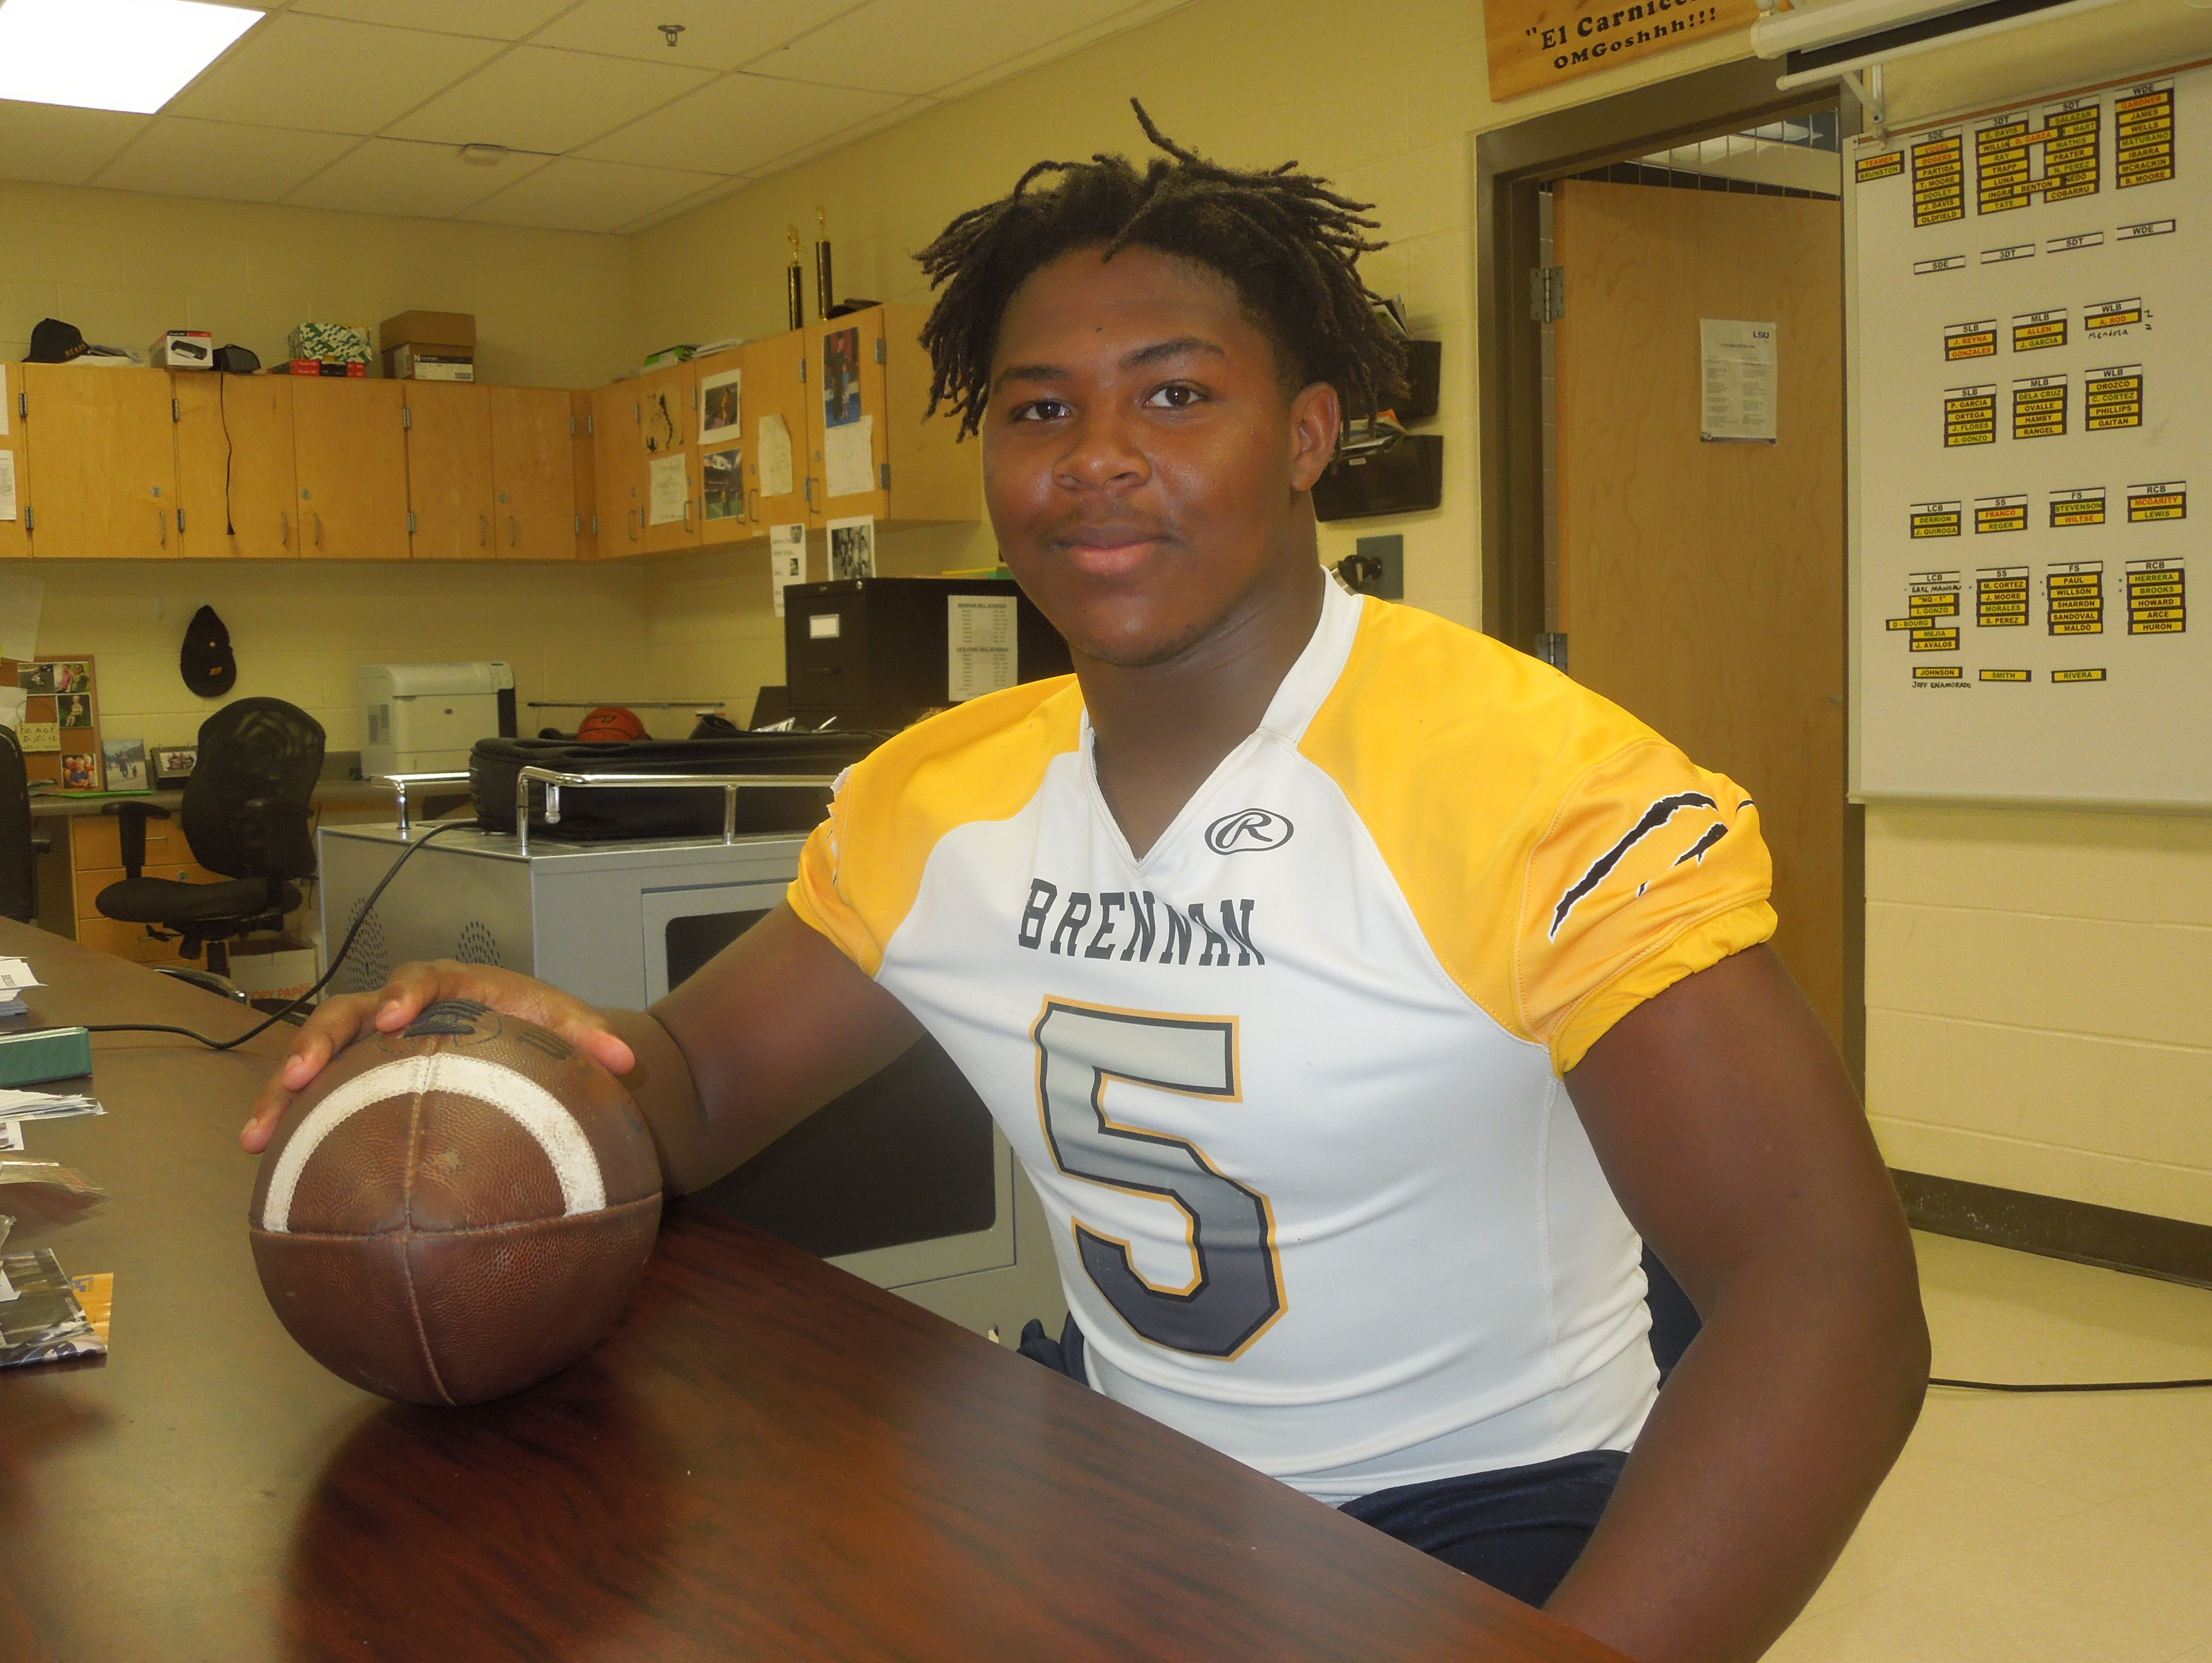 Brennan senior middle linebacker D.J. Allen has started on defenses that have recorded 13 shutouts in 28 games the past two seasons.